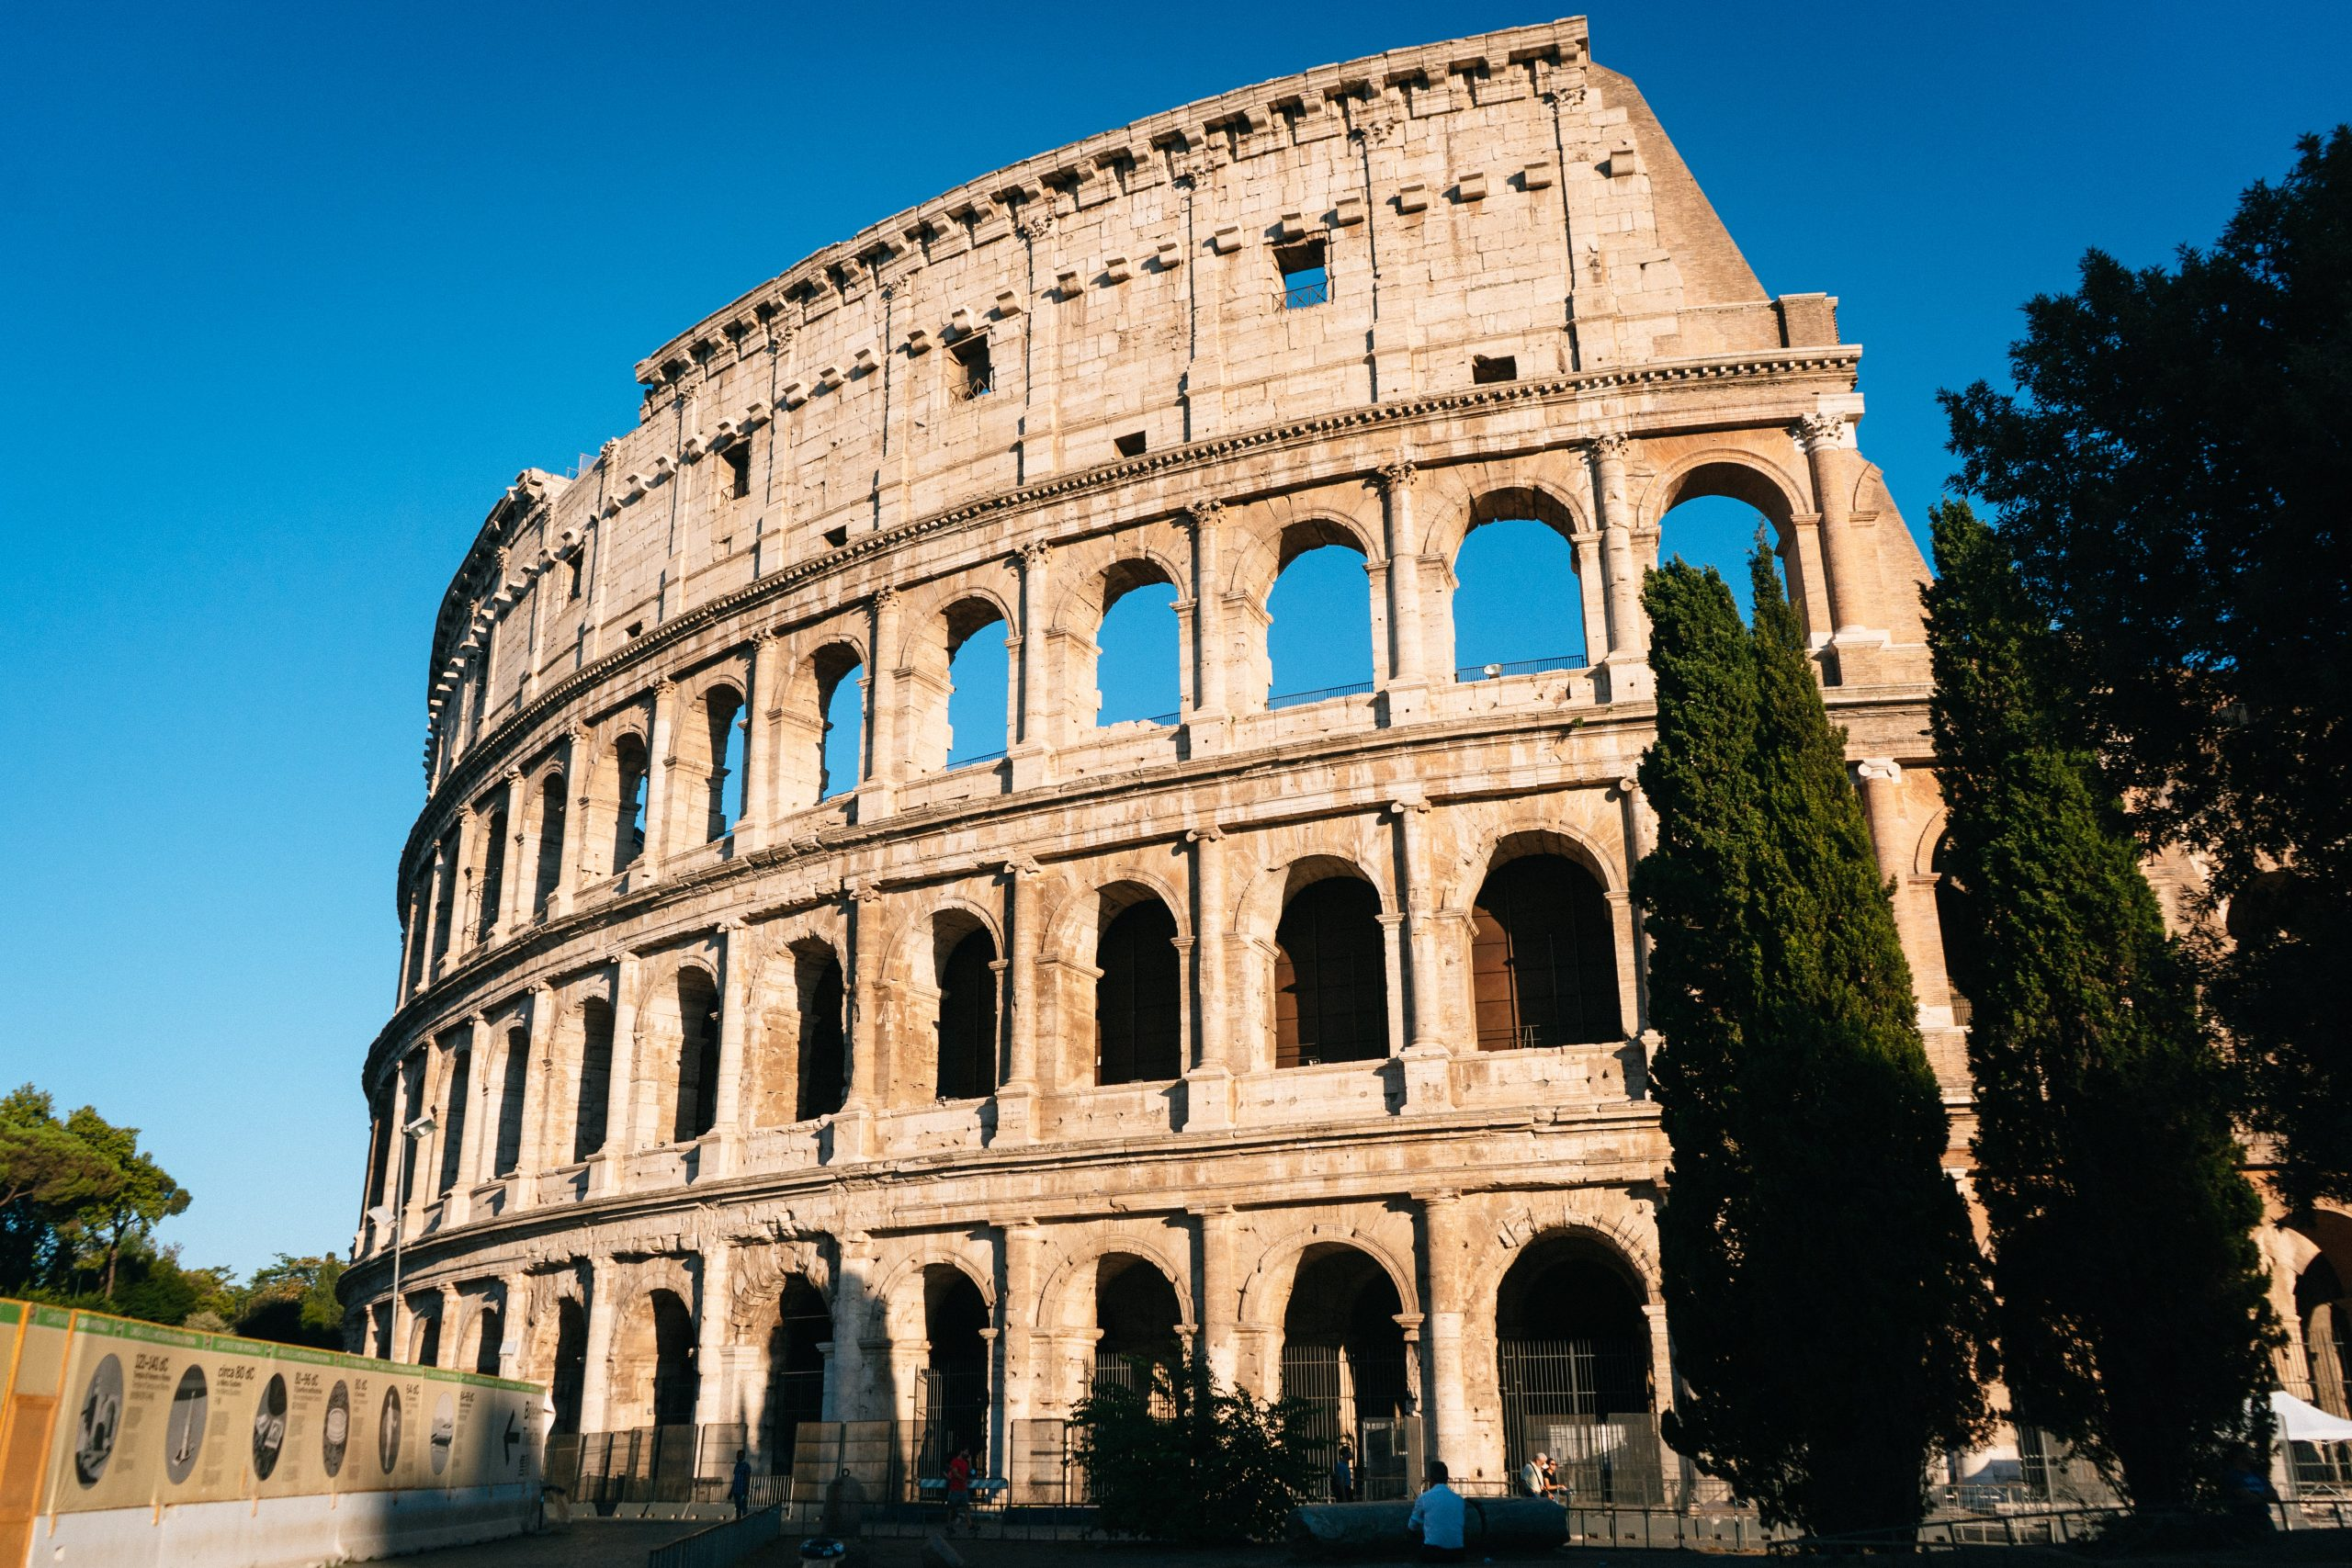 Rome-One of the Most Beautiful Cities in the World